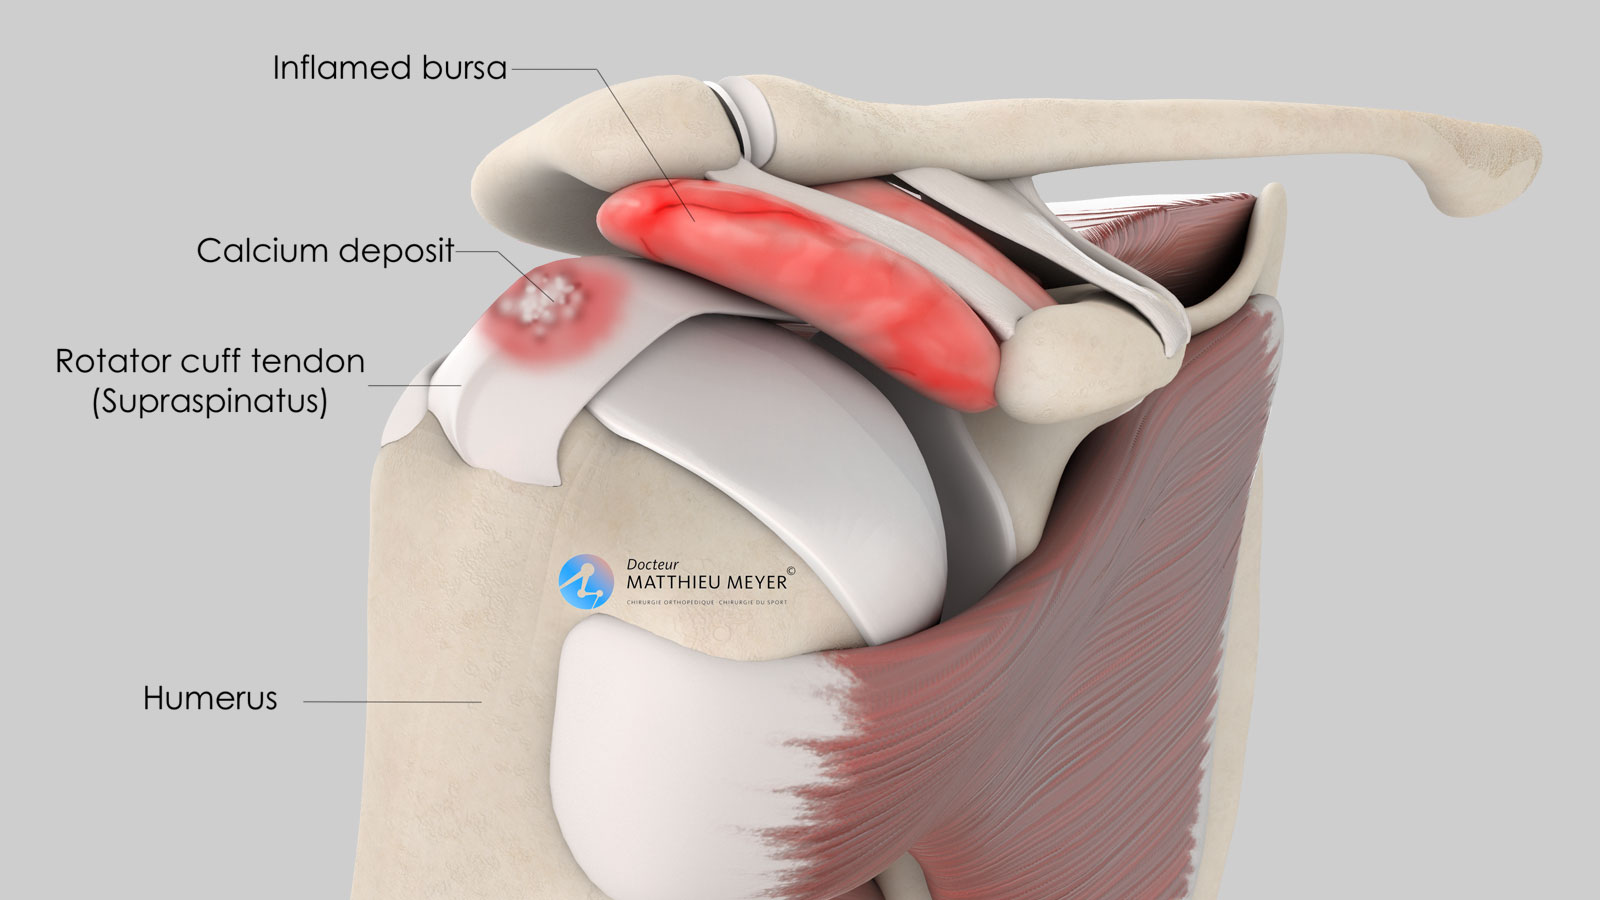 Calcific tendonitis of the rotator cuff